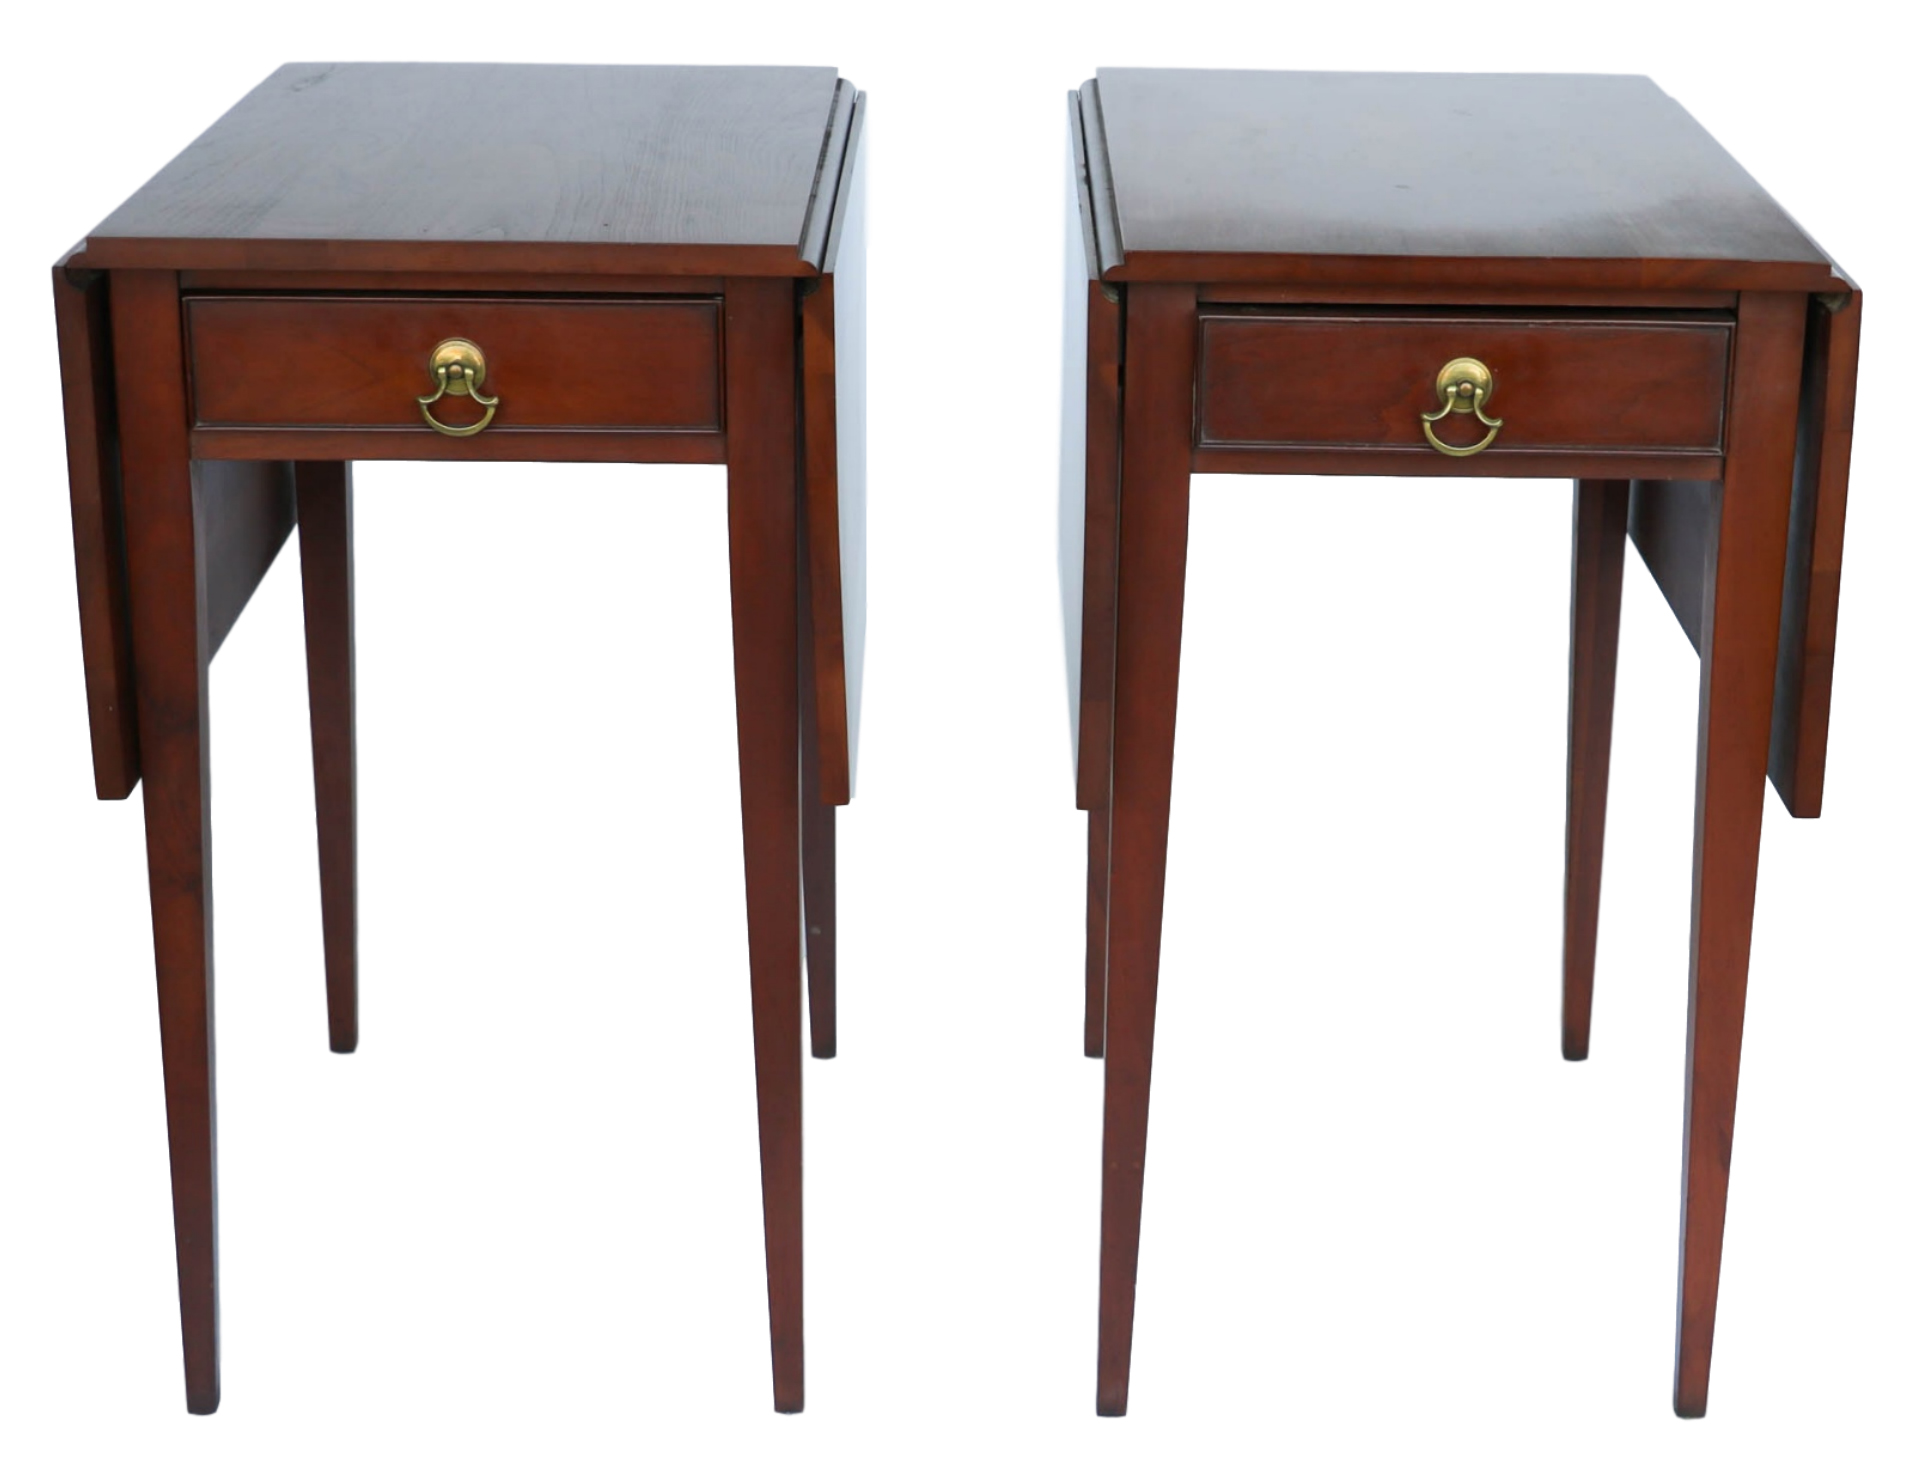 drop leaf end tables pilates henkel harris mahogany pembroke side table pair queen anne vintage travel trunk glass and metal accent designer lamp shades for lamps build your own